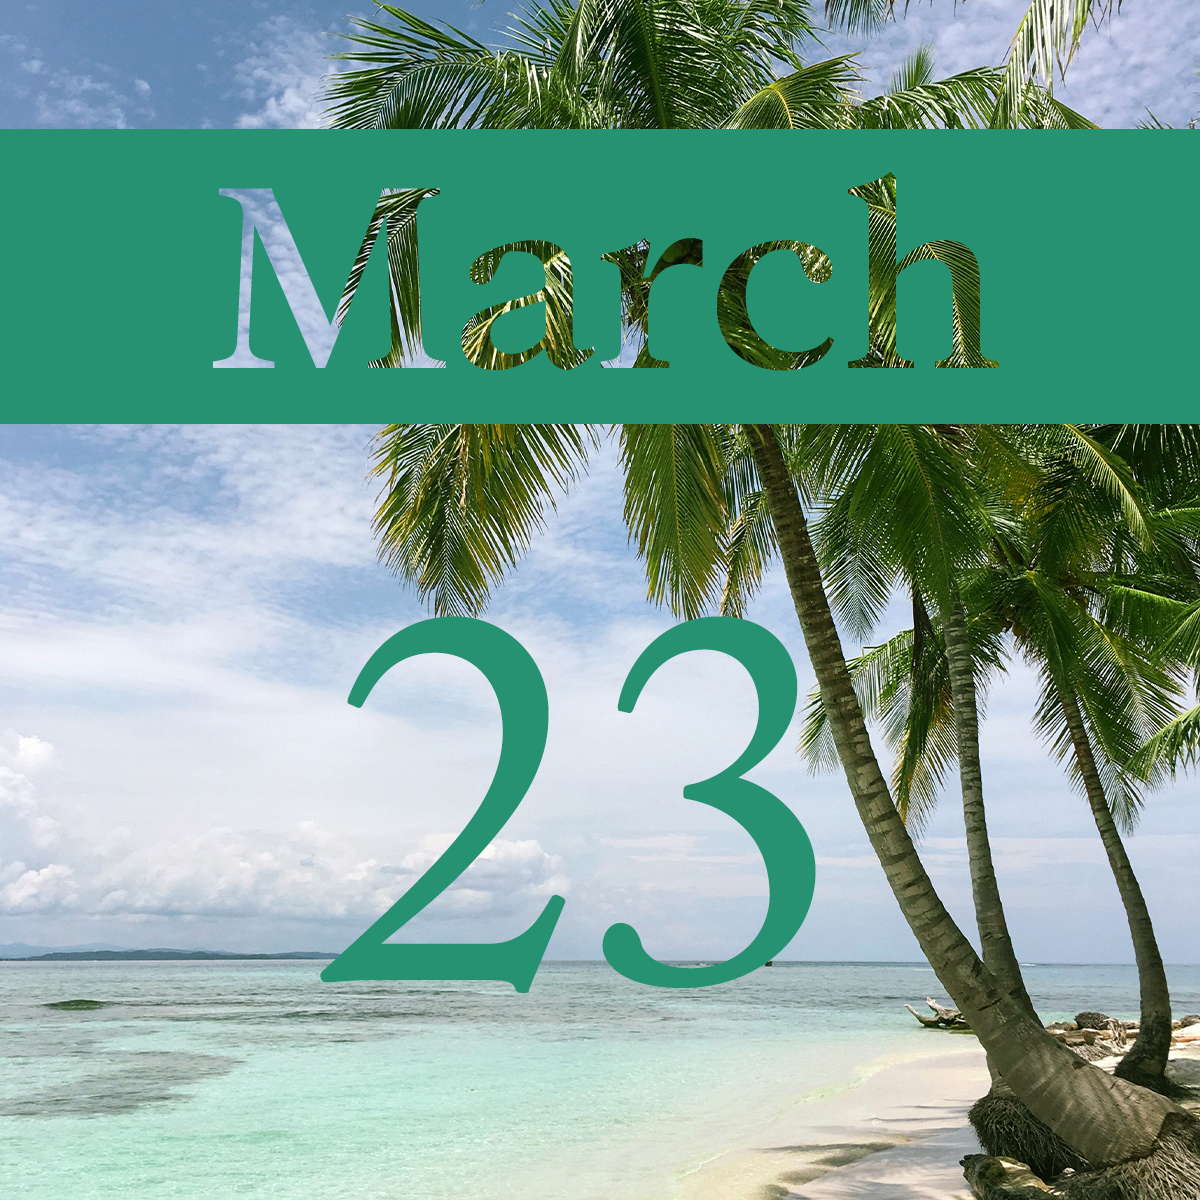 Monday, March 23rd